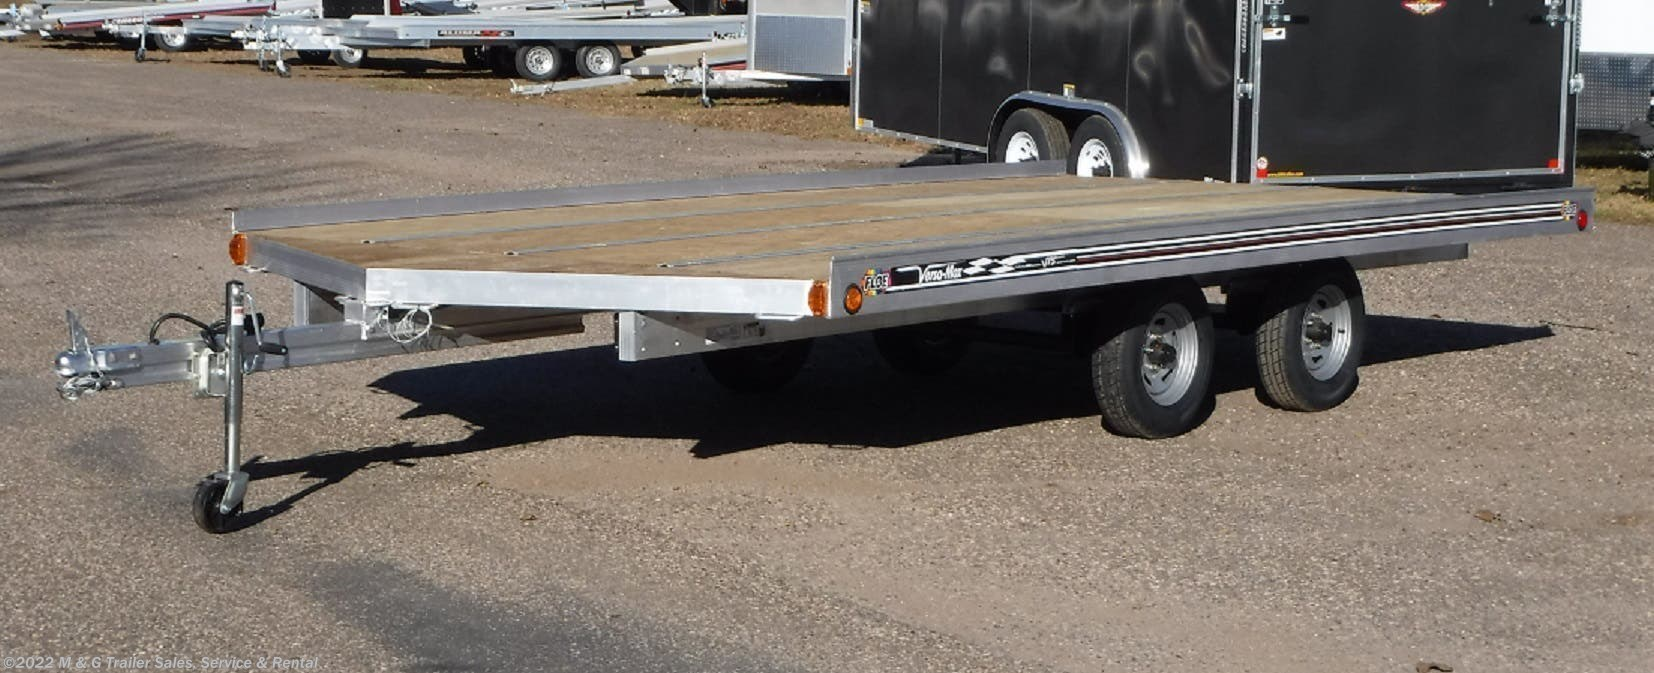 2021 FLOE Versa Max 16' Snowmobile Trailer - Stock #M002011